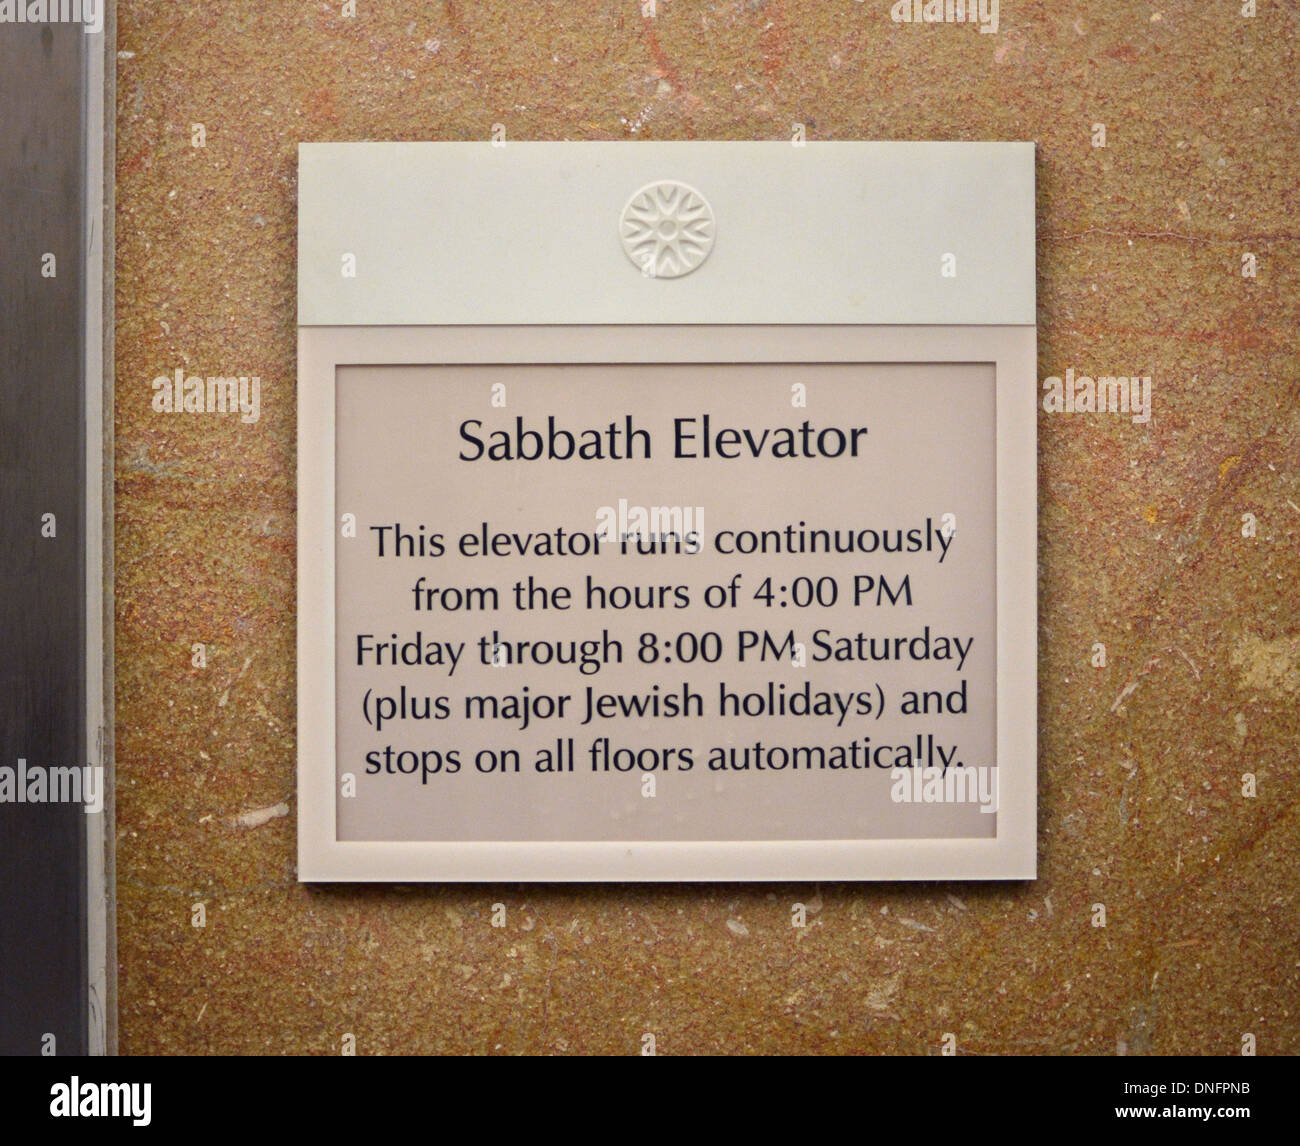 A sign for a Sabbath elevator in the lobby of New York Presbyterian